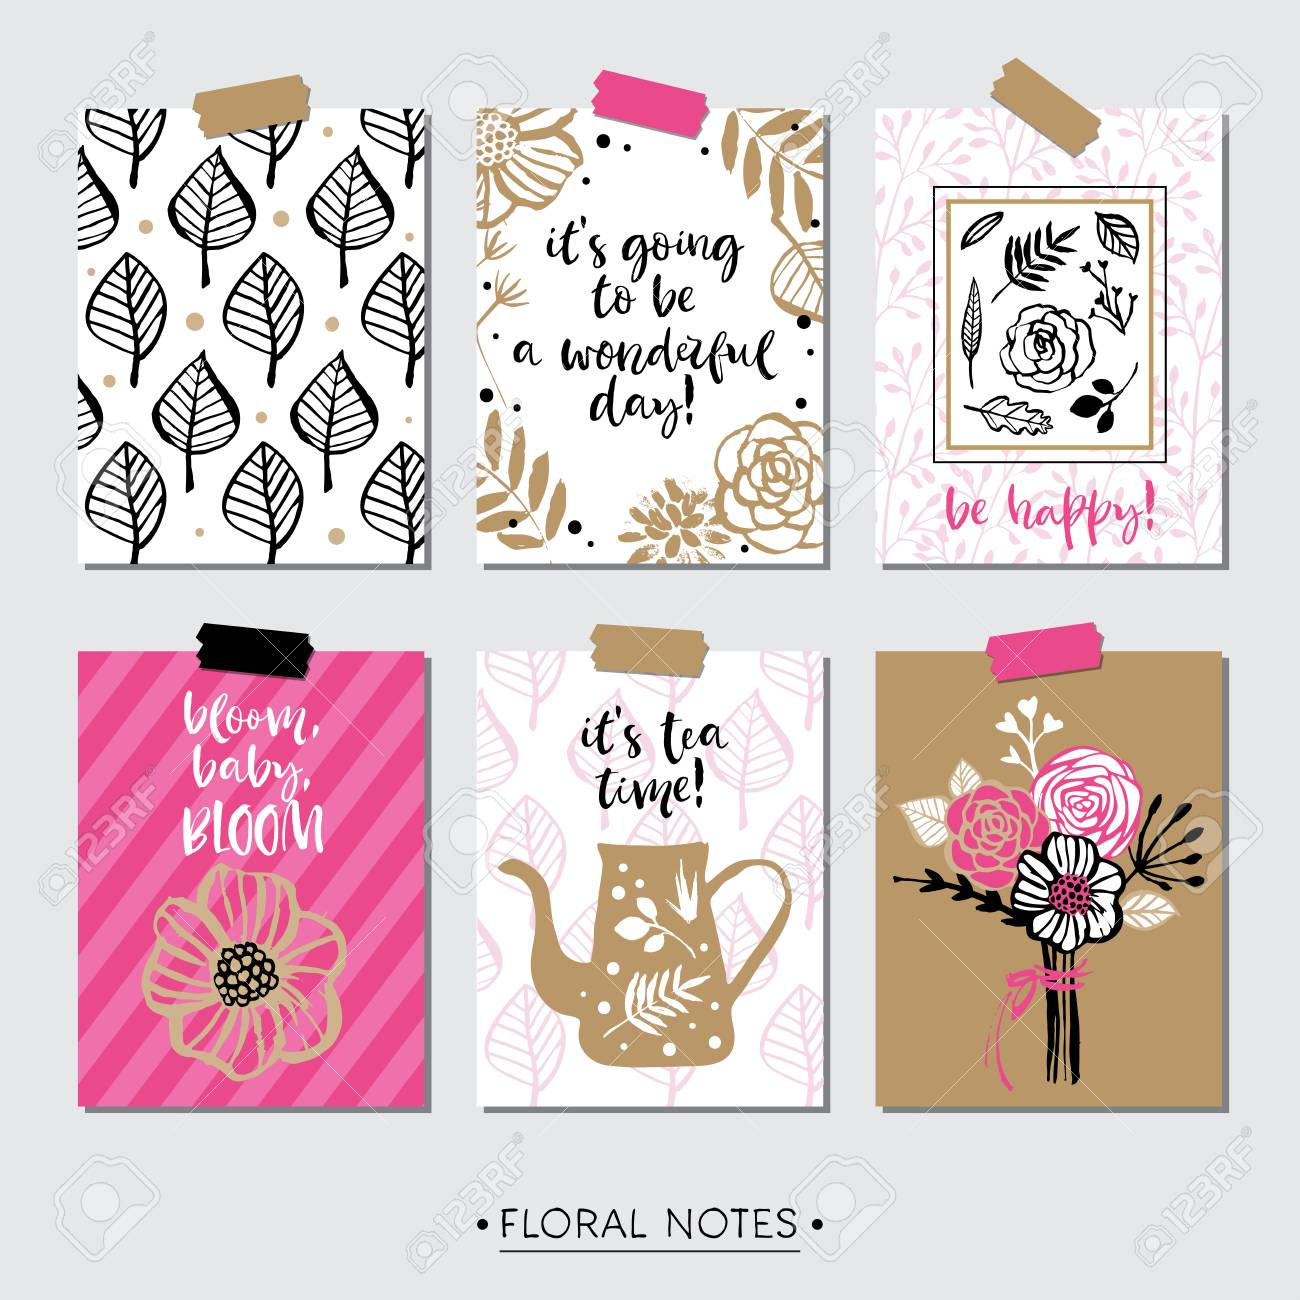 Feminine Pink Floral Greeting Cards With Inspirational Quotes